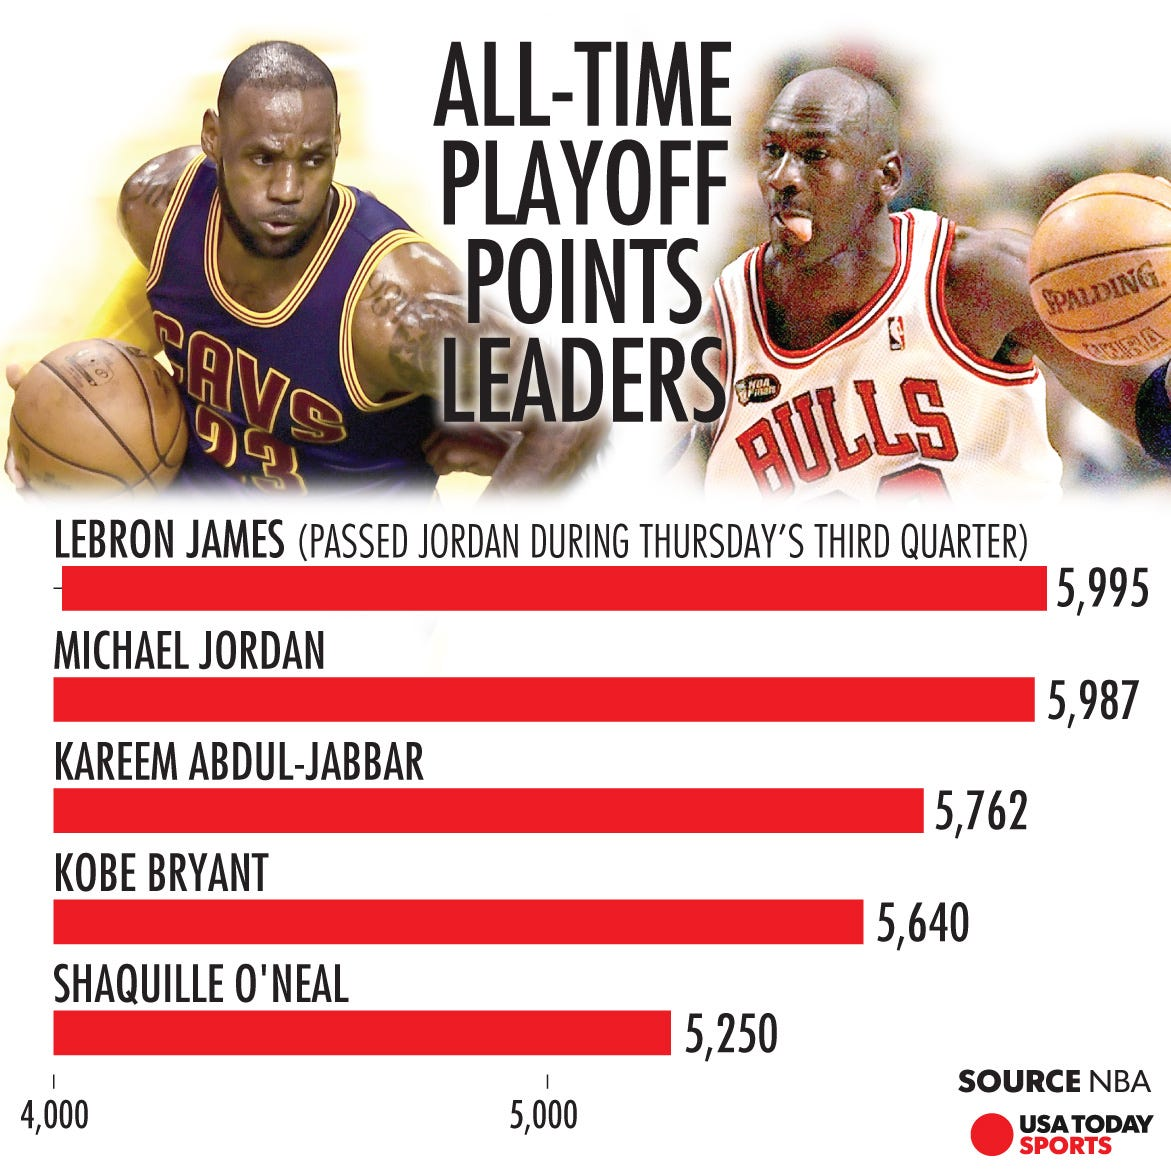 nba-most-playoff-points-lebron-james-mic